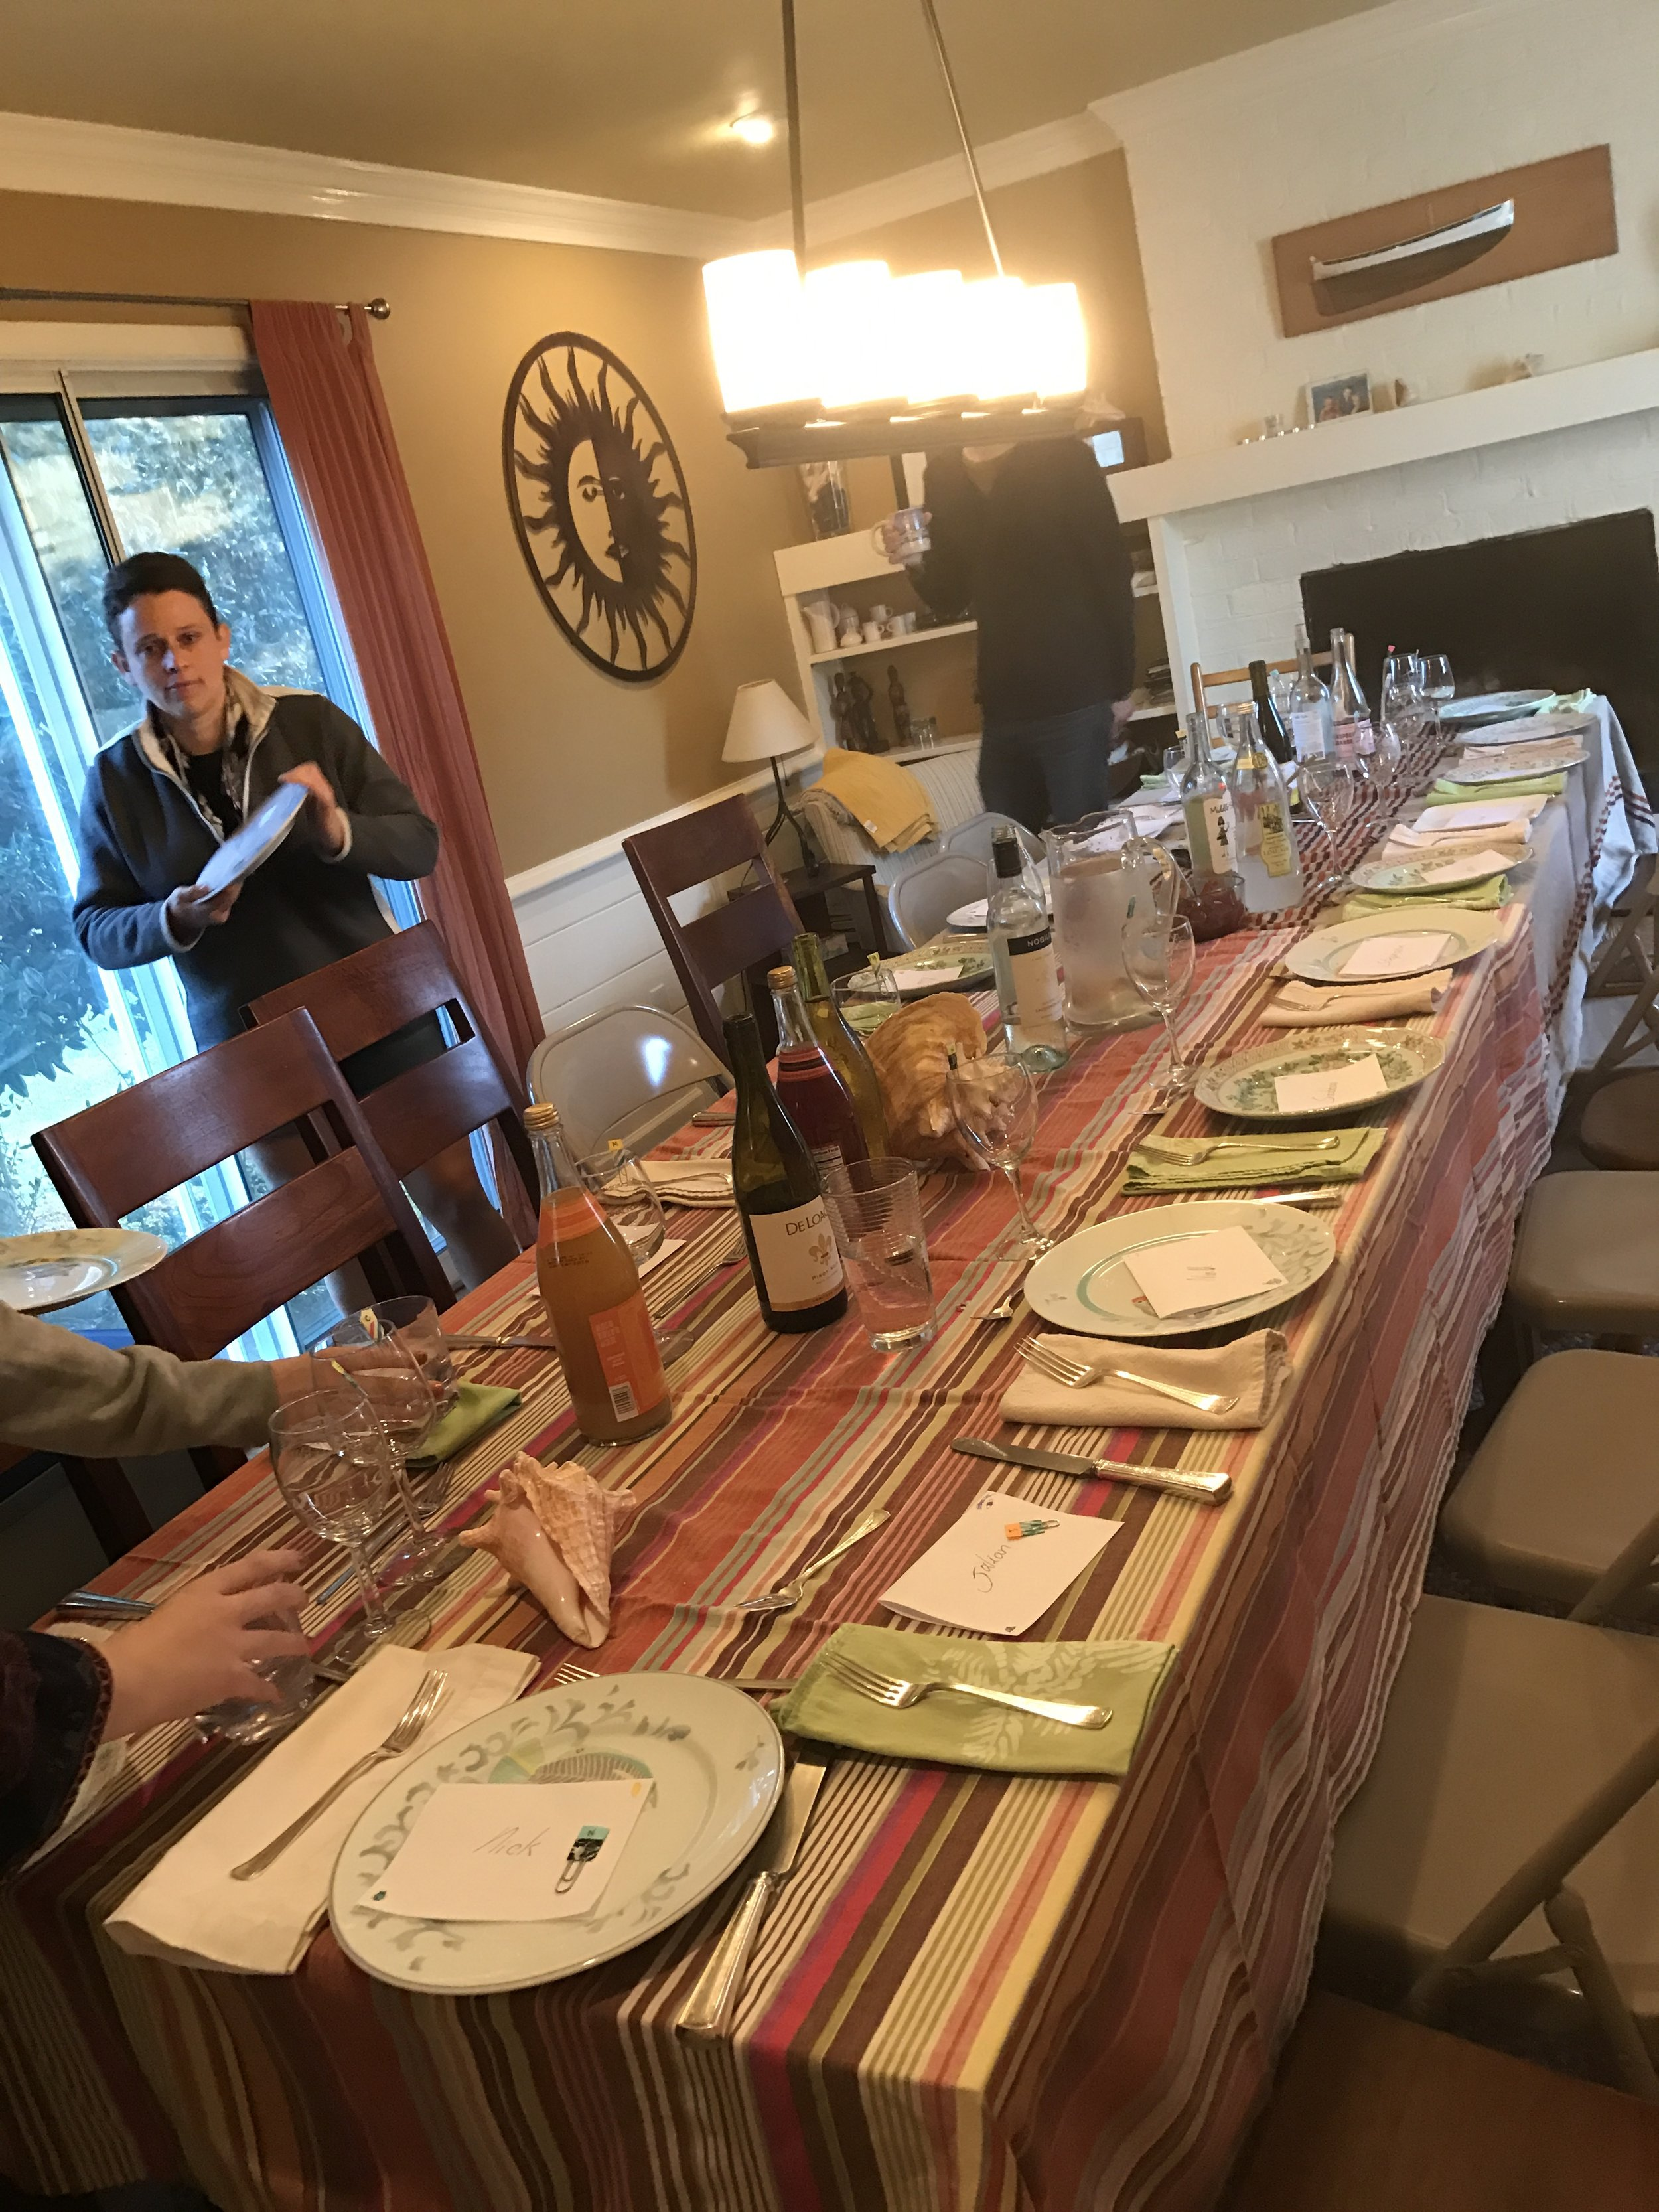 A great dining room for hosting a feast!